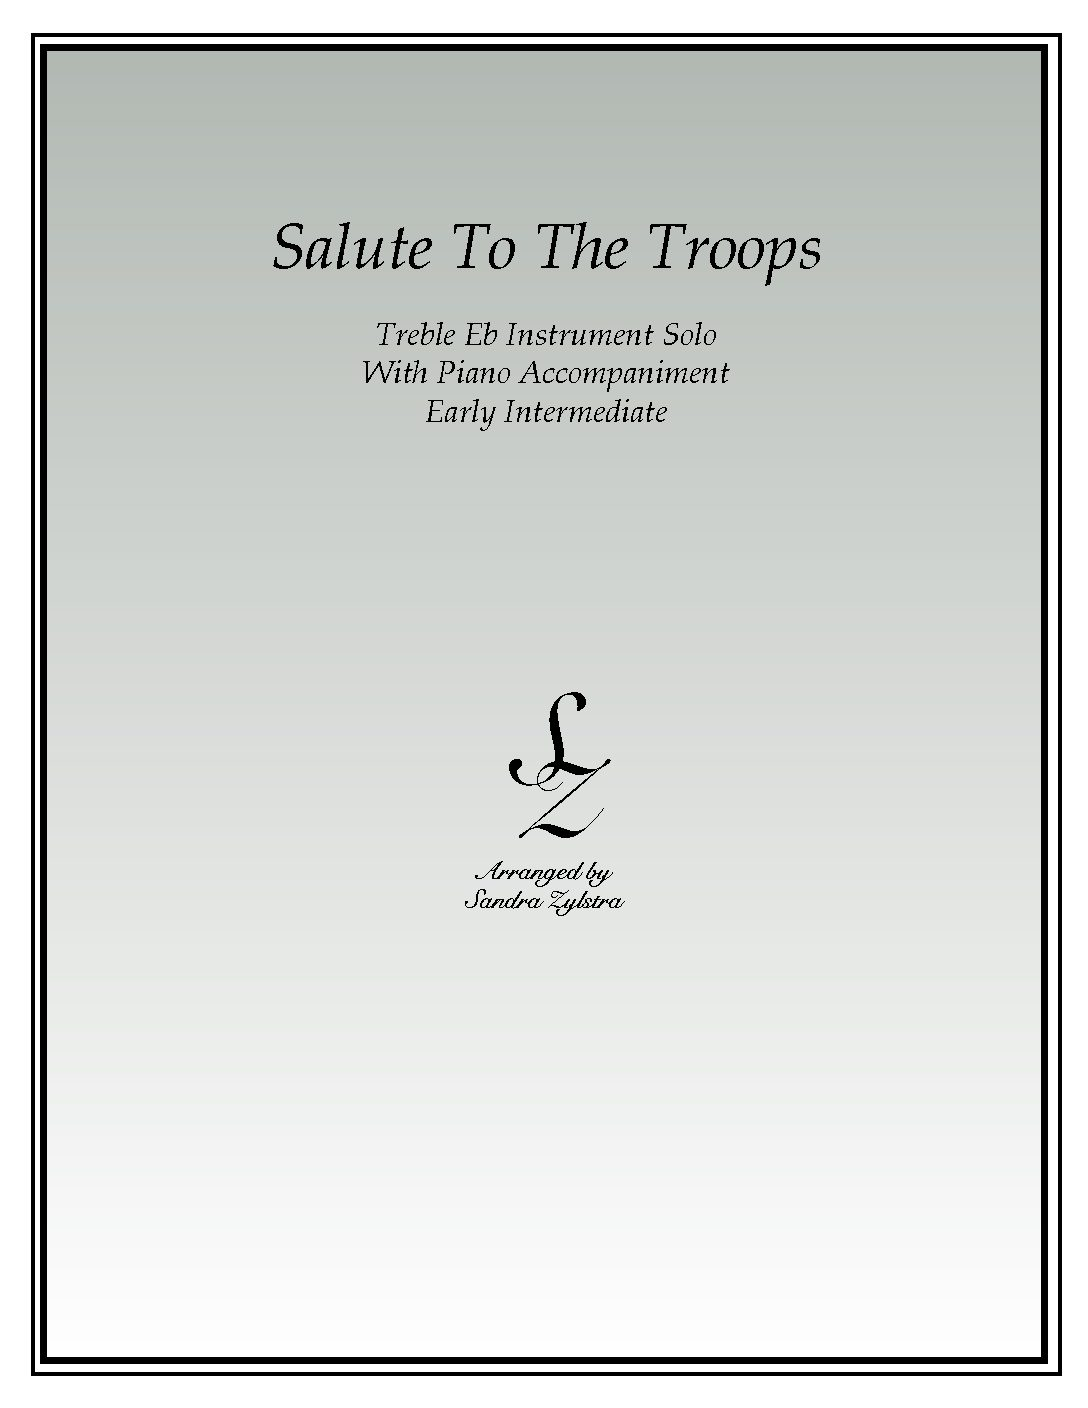 Salute To The Troops -Treble Eb Instrument Solo